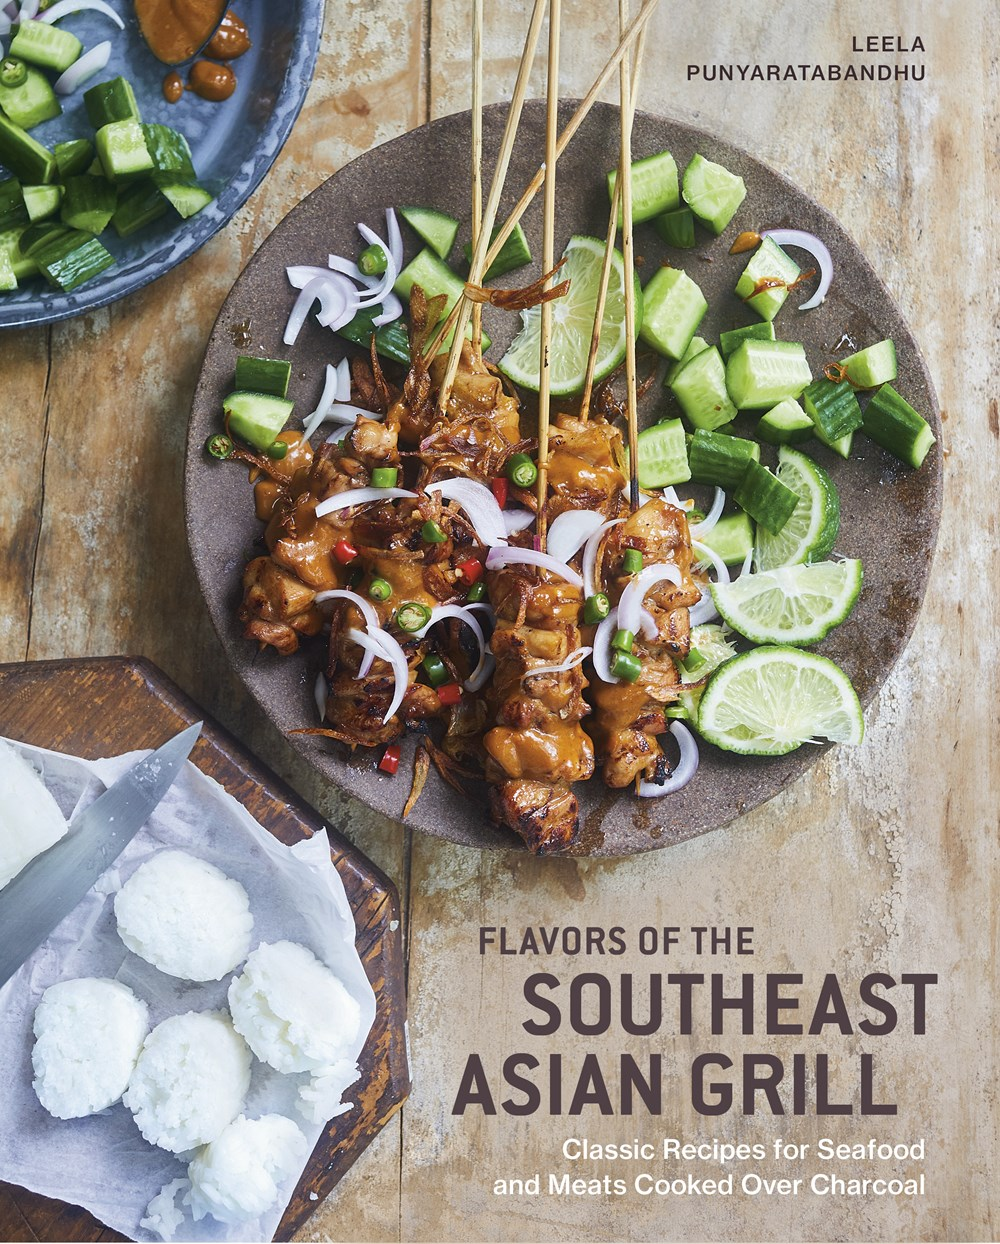 Flavors of the Southeast Asian Grill Classic Recipes for Seafood and Meats Cooked Over Charcoal [a C